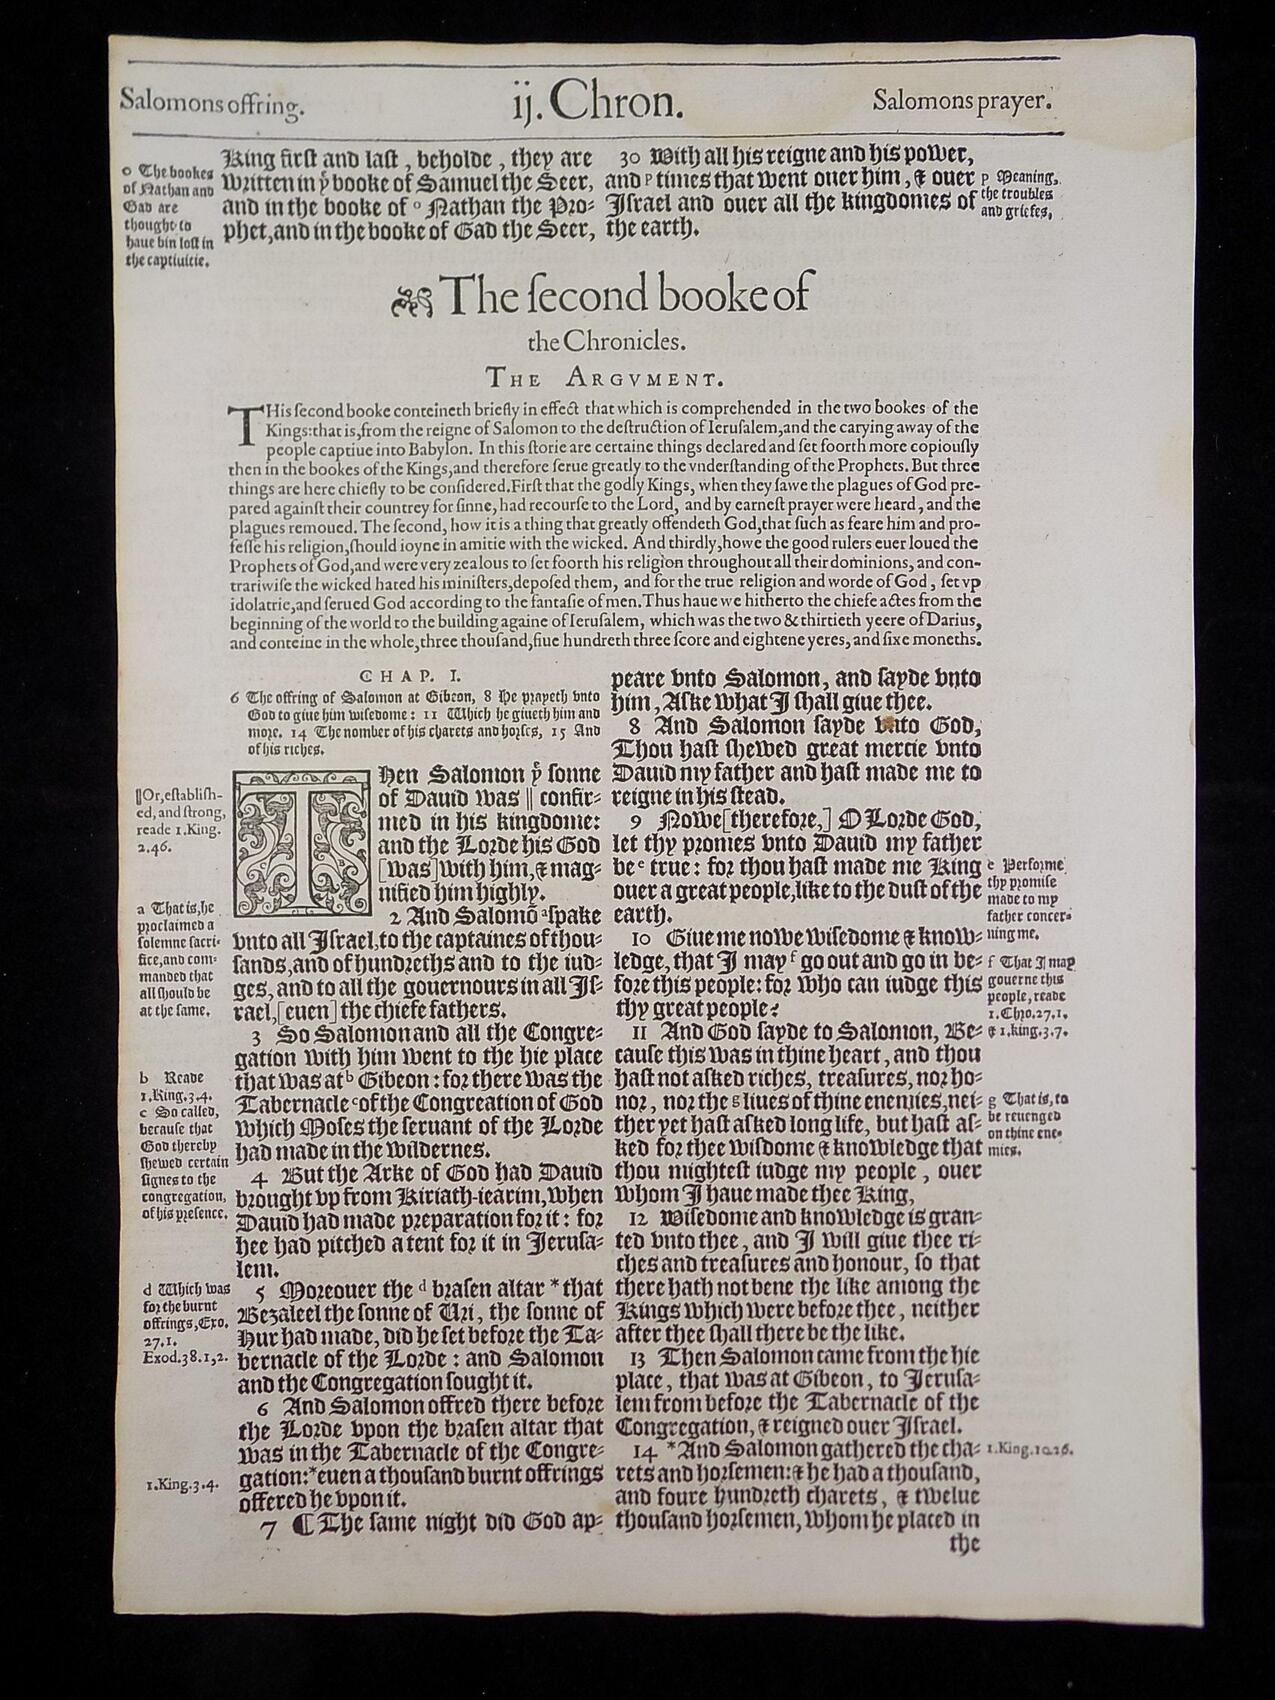 1583 NOBLEST GENEVA BIBLE LEAVES BOOK OF SECOND